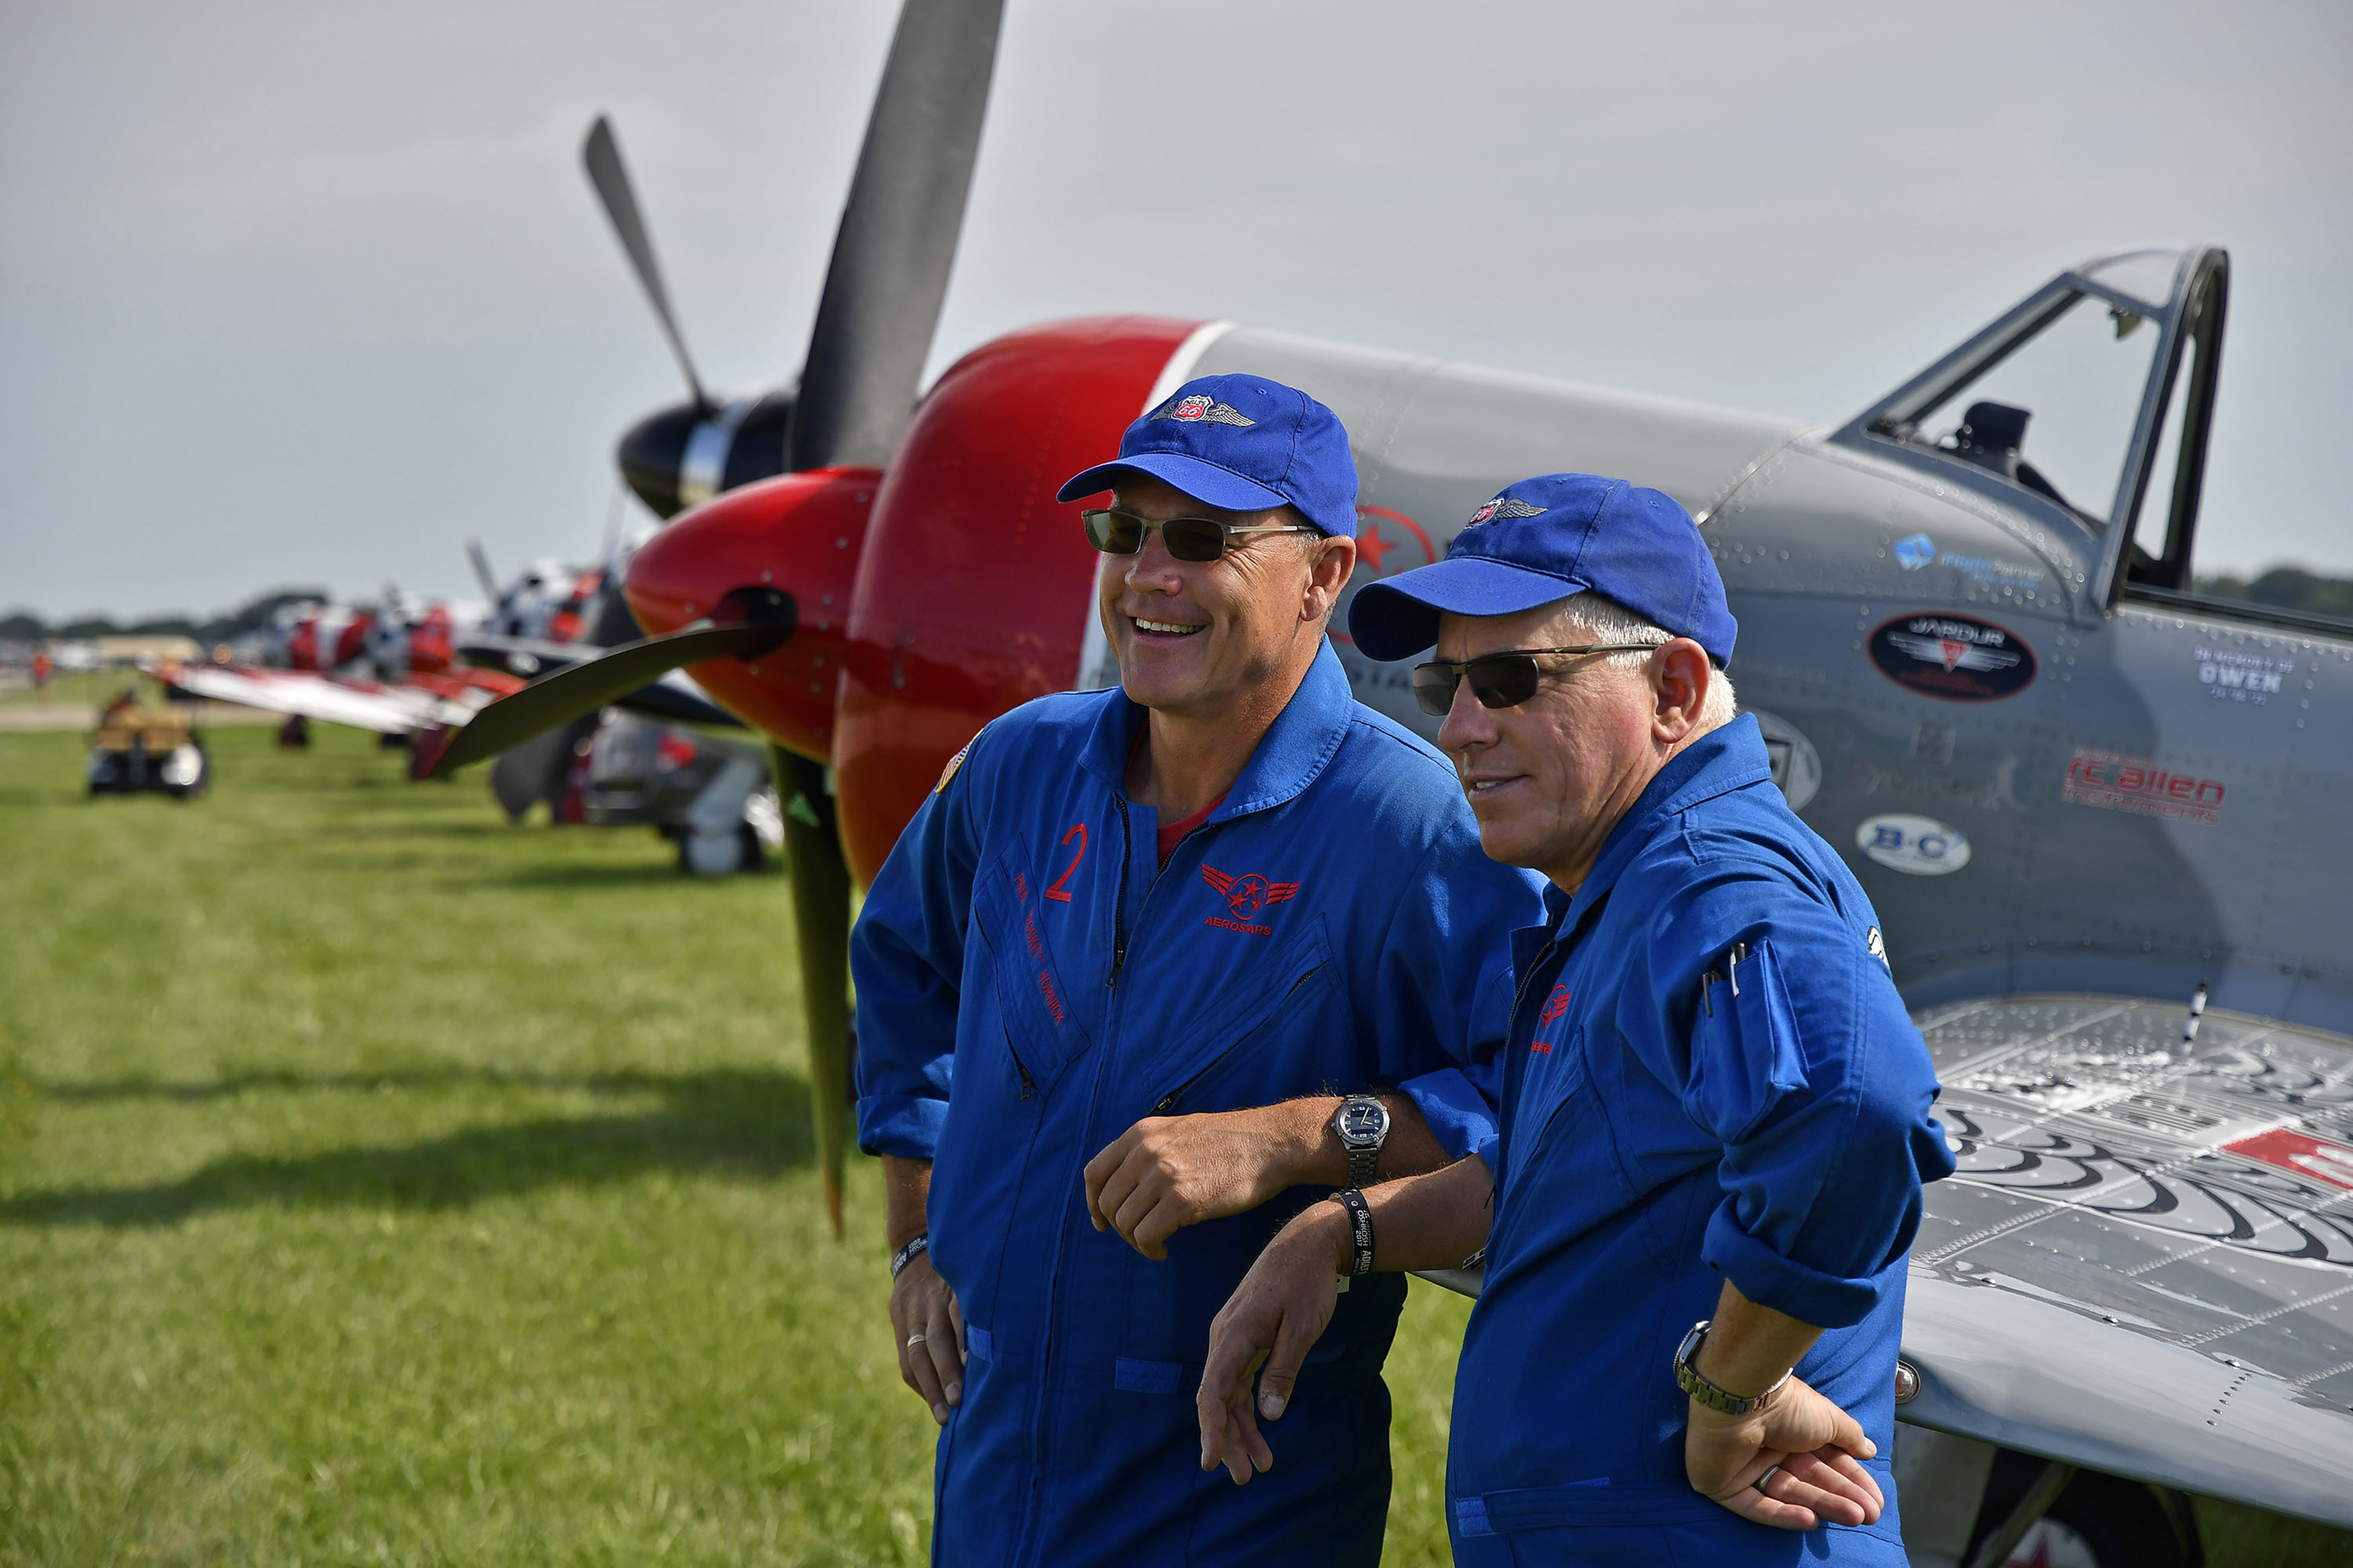 Phillips 66 Aerostars teammates Paul 'Rocket' Hornick and Dave 'Cupid' Monroe smile from the flight line during EAA AirVenture in Oshkosh, Wisconsin. The pilots begin training for the summer air show season in January. Photo by David Tulis.